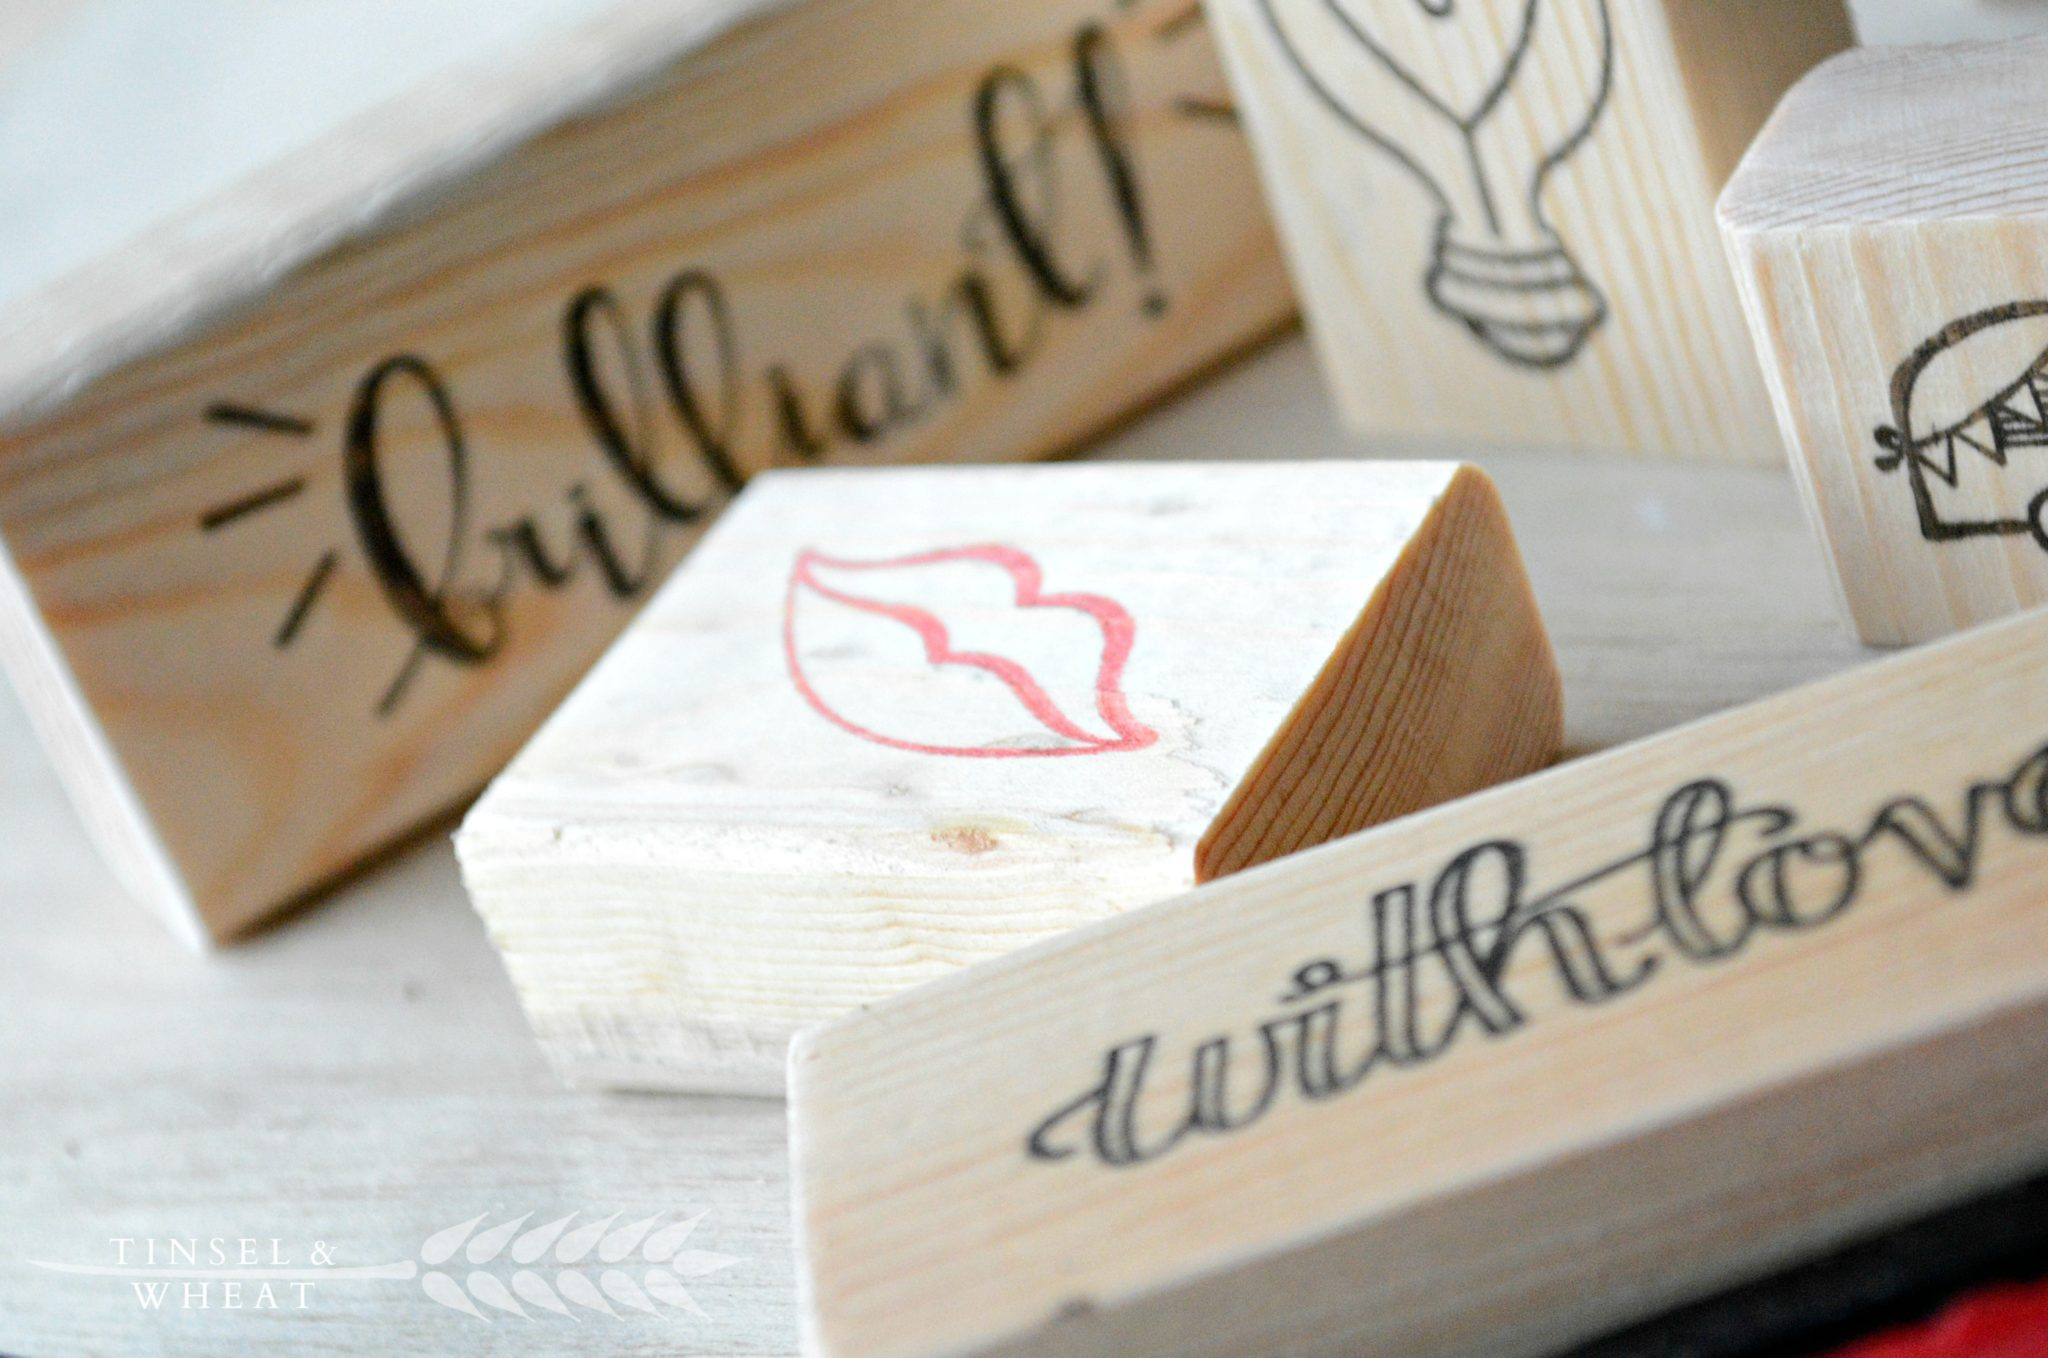 Stamped wooden blocks